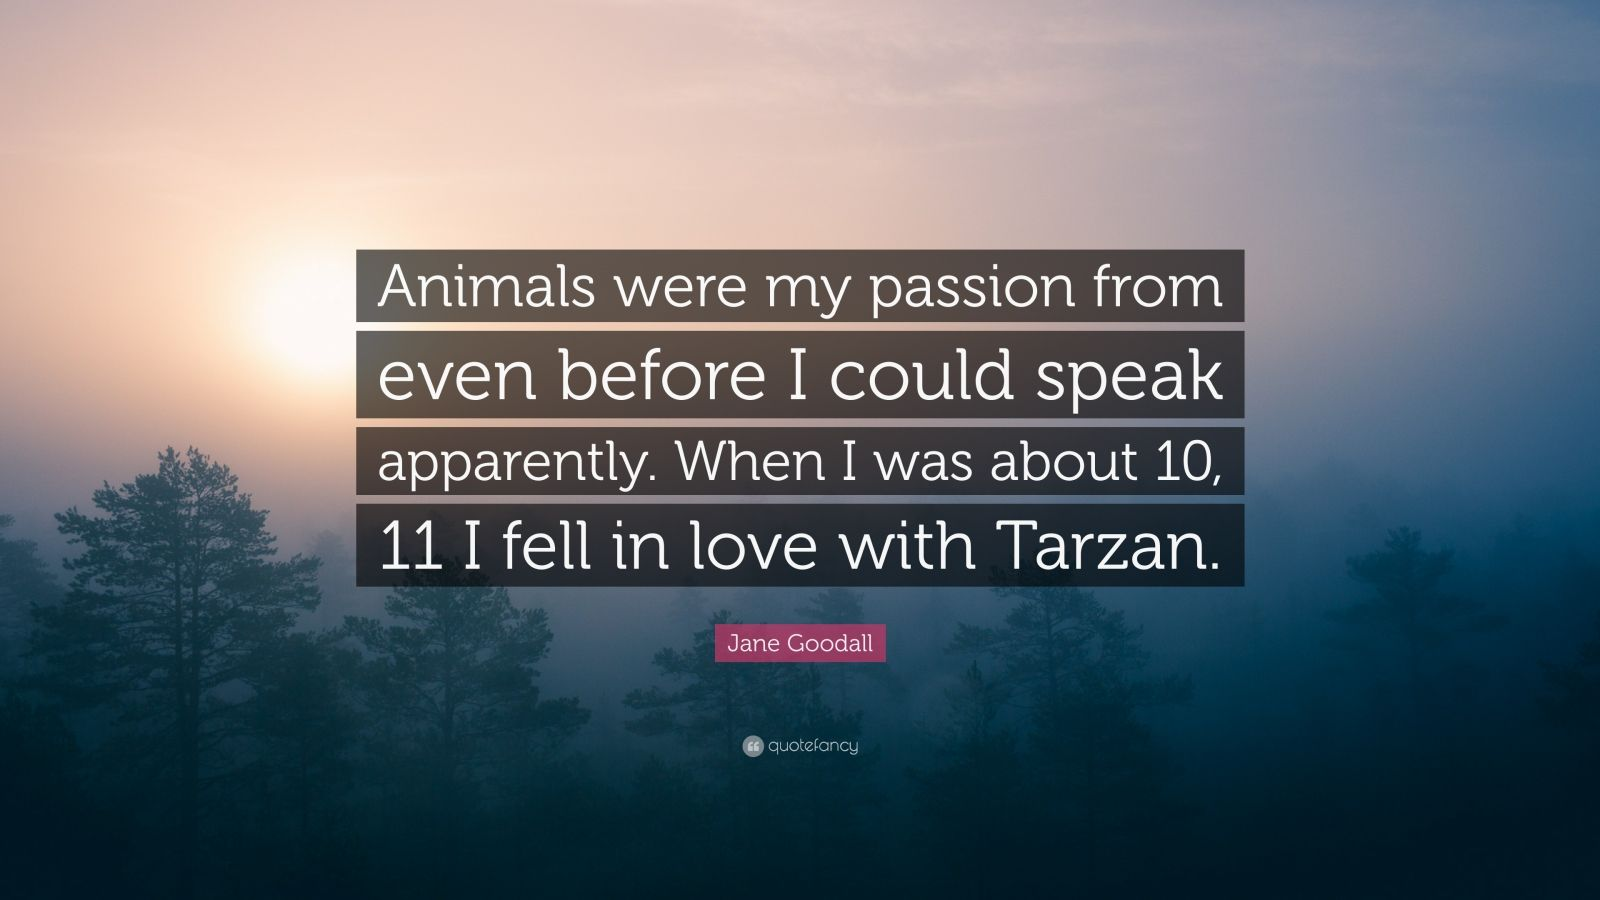 """Jane Goodall Quote: """"Animals were my passion from even before I could speak apparently. When I was about 10, 11 I fell in love with Tarzan."""""""